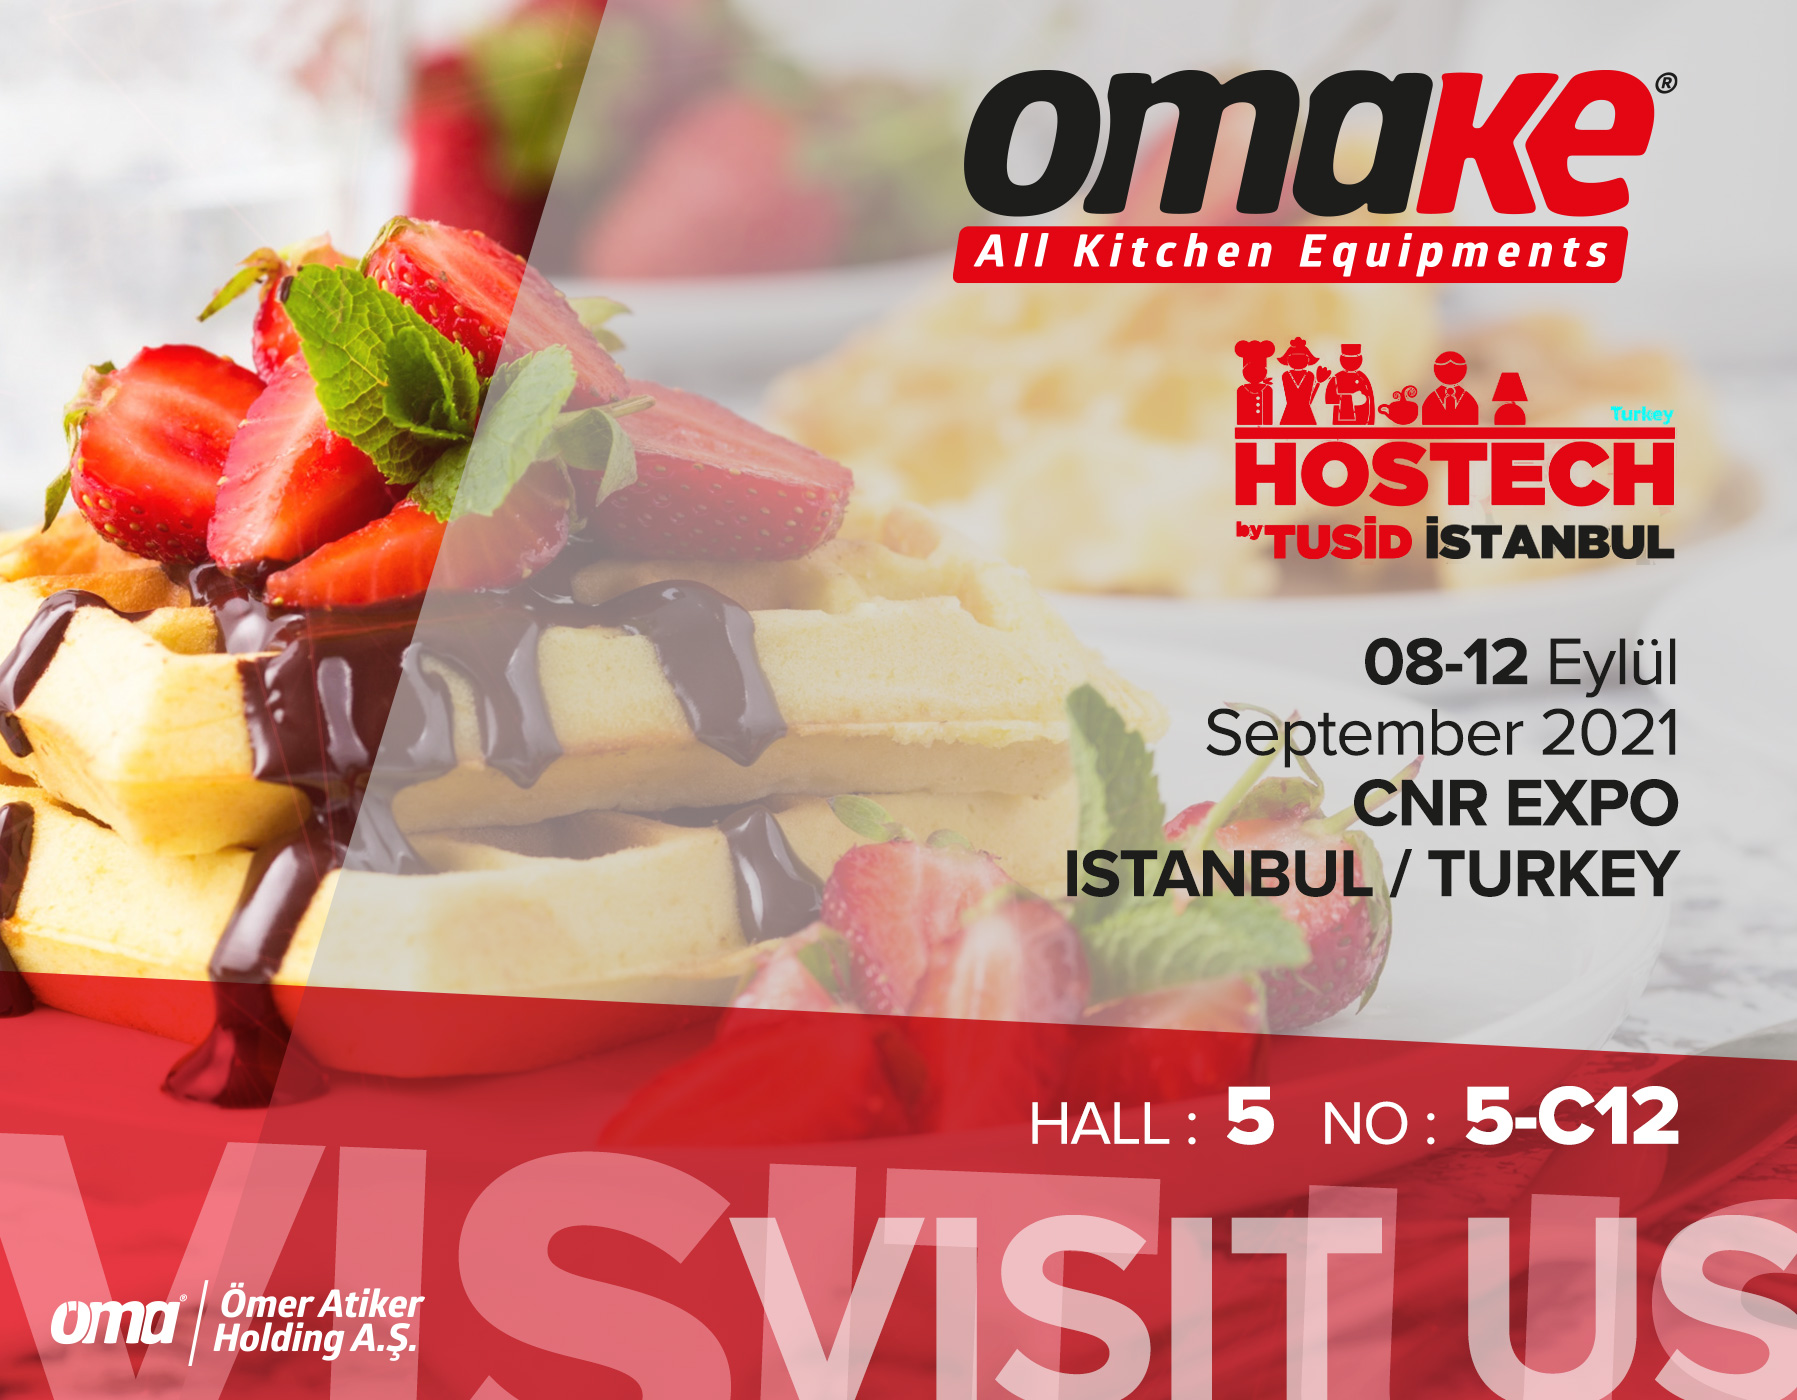 HOSTECH by TUSİD 2021